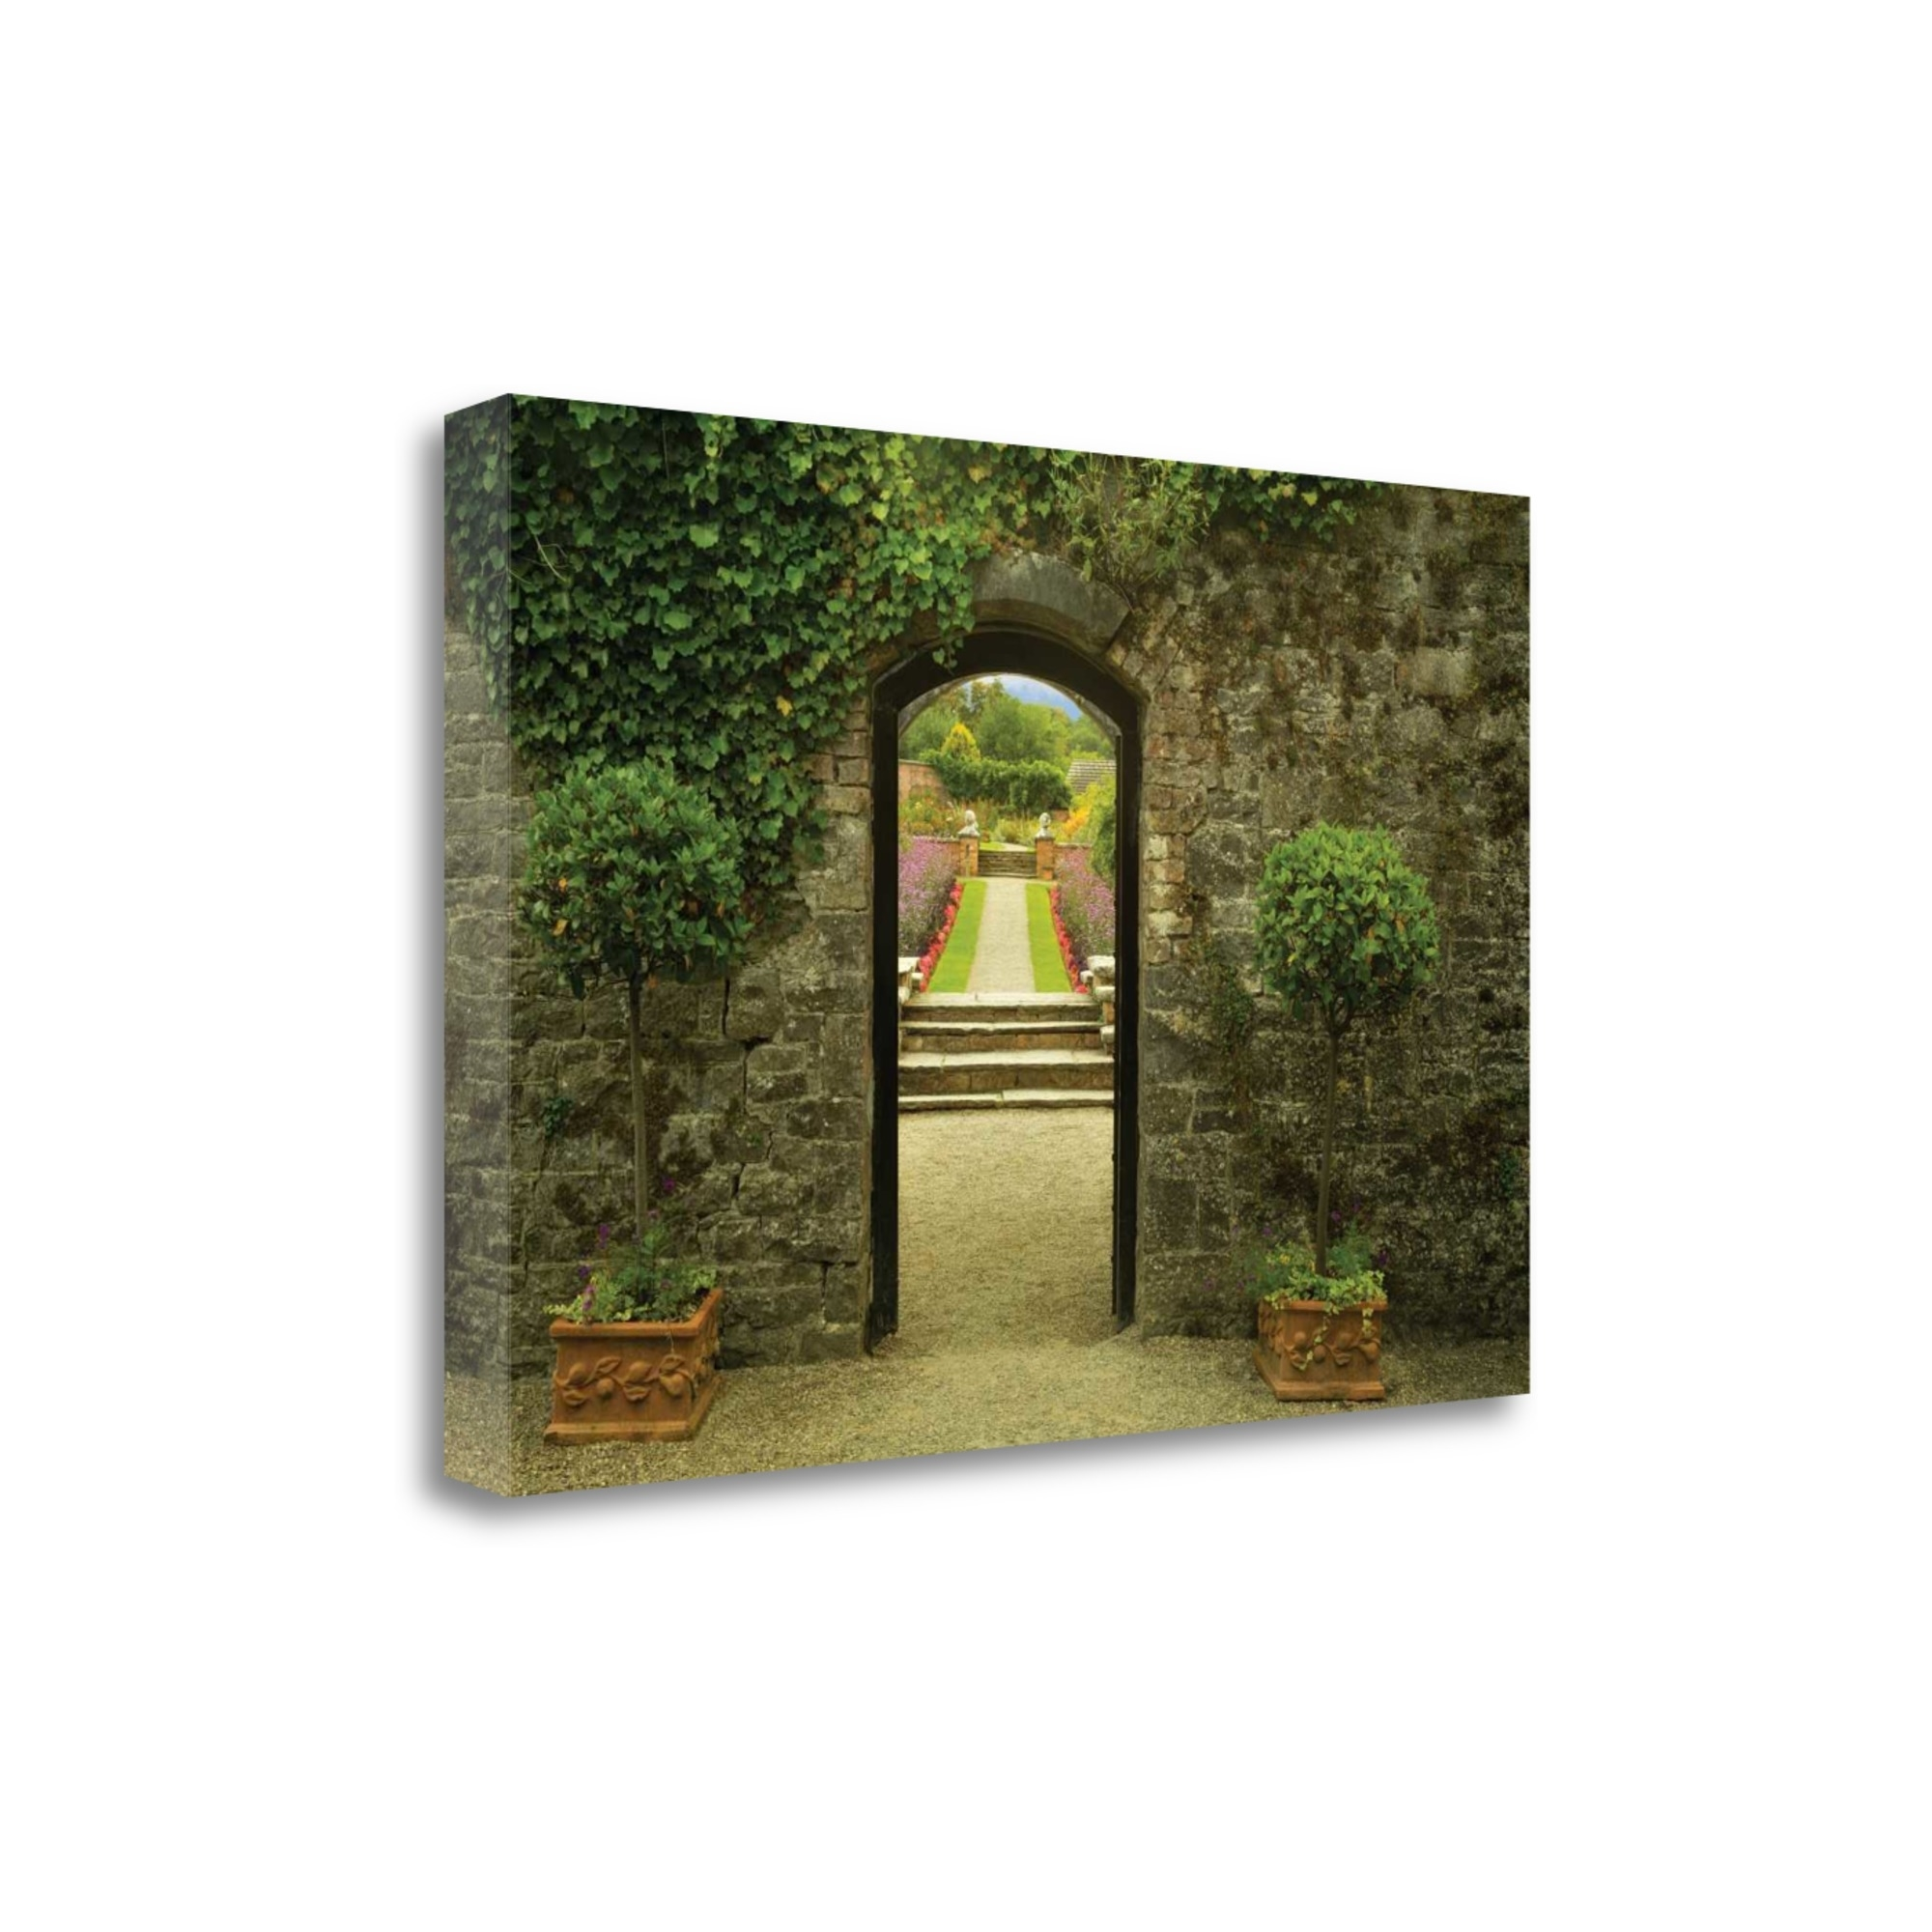 "Garden Arch By Dennis Frates, 29"" x 20\"" Fine Art Giclee Print on Gallery Wrap Canvas, Ready to Hang"